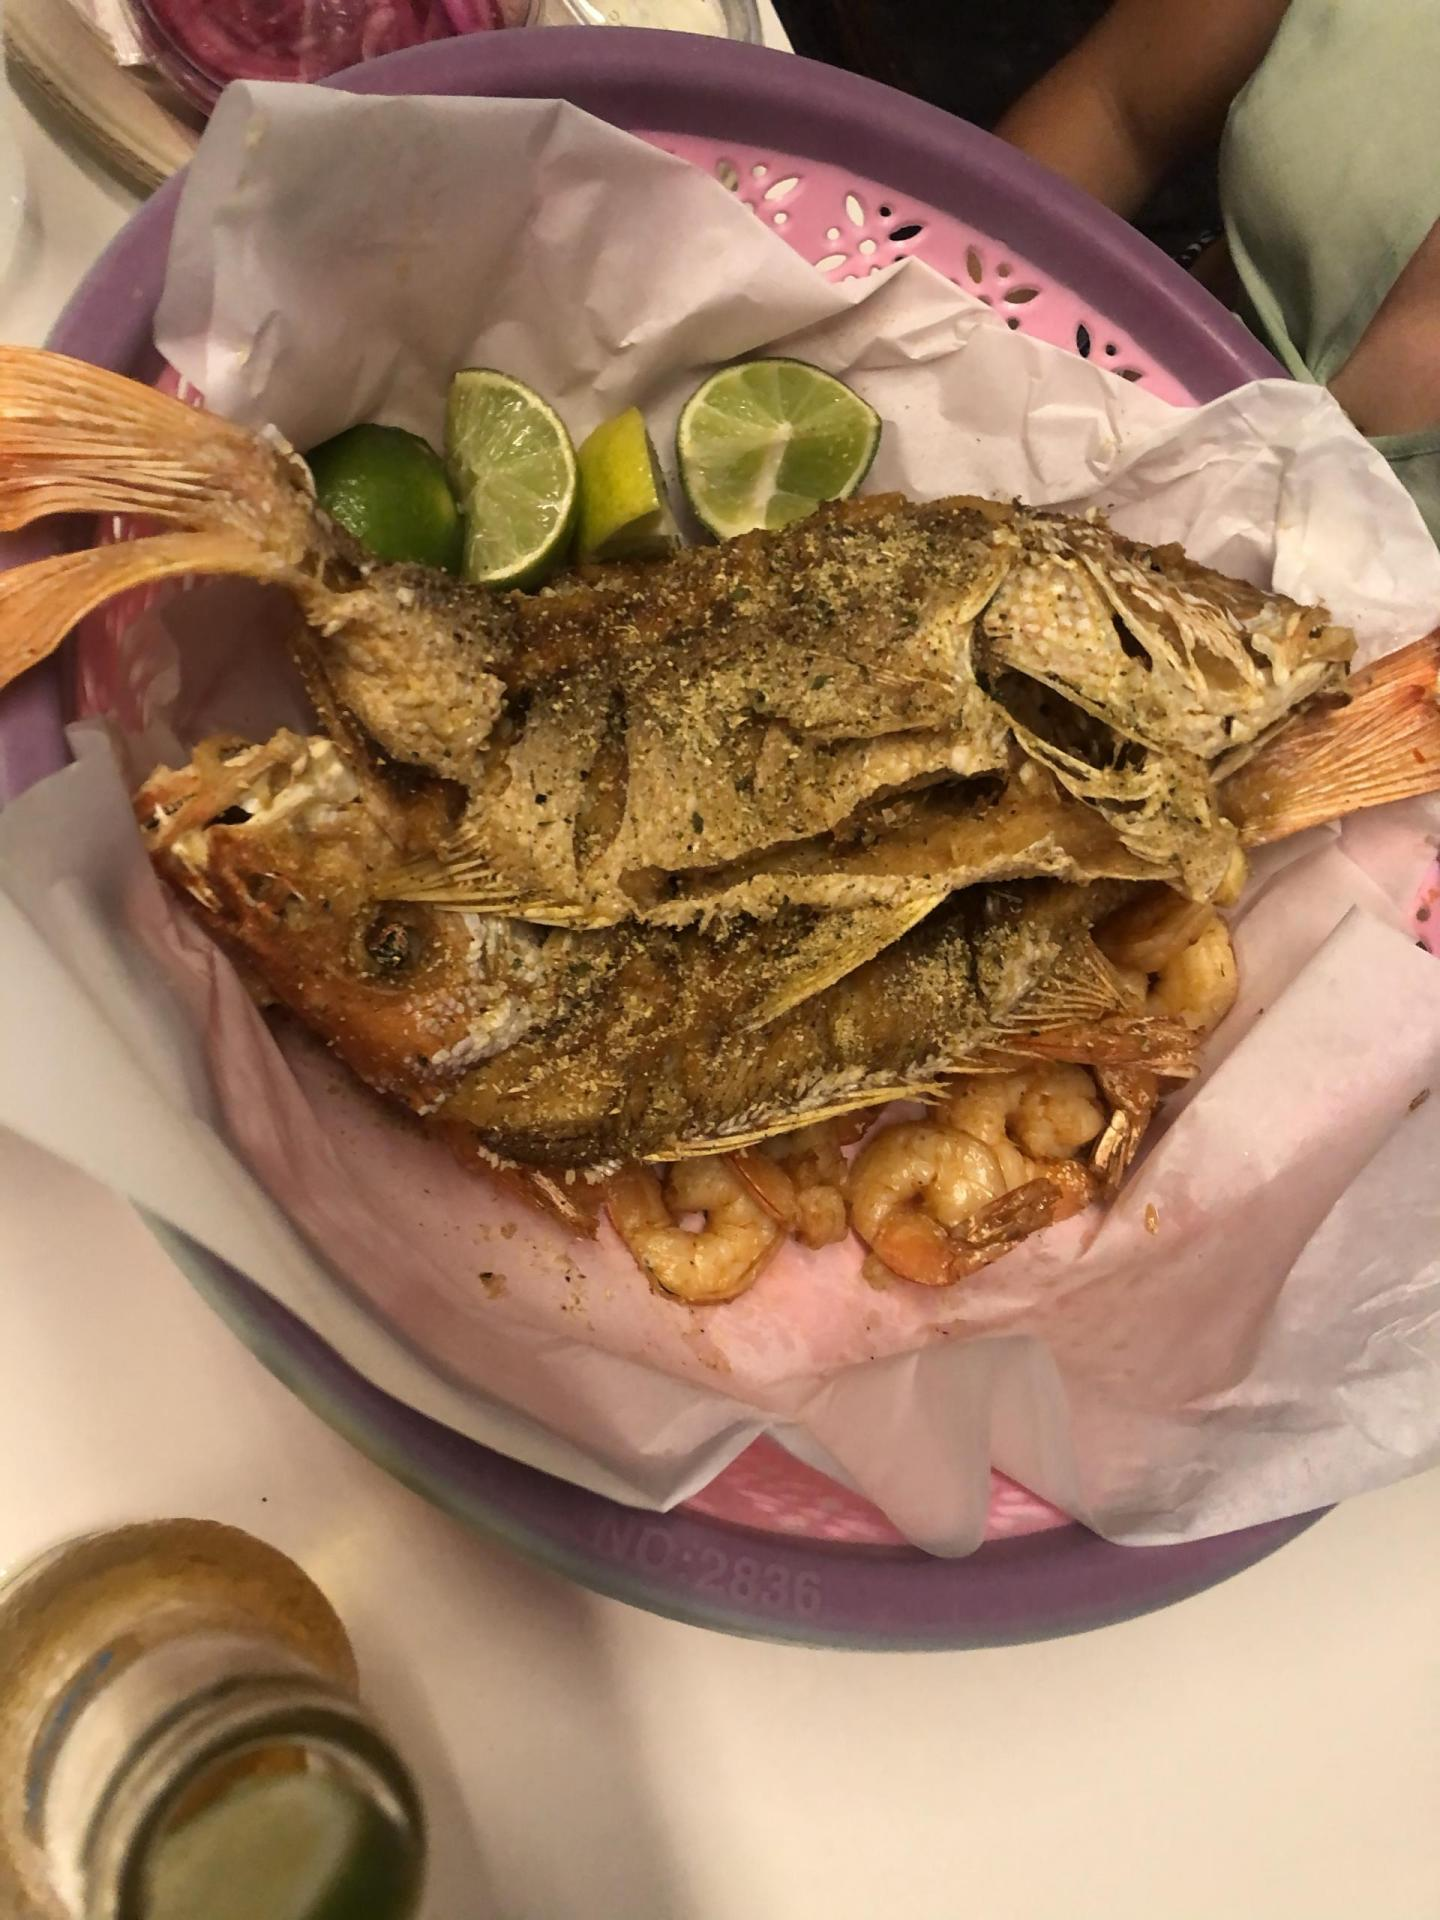 Picture of two fried fish with lime and shrimps.